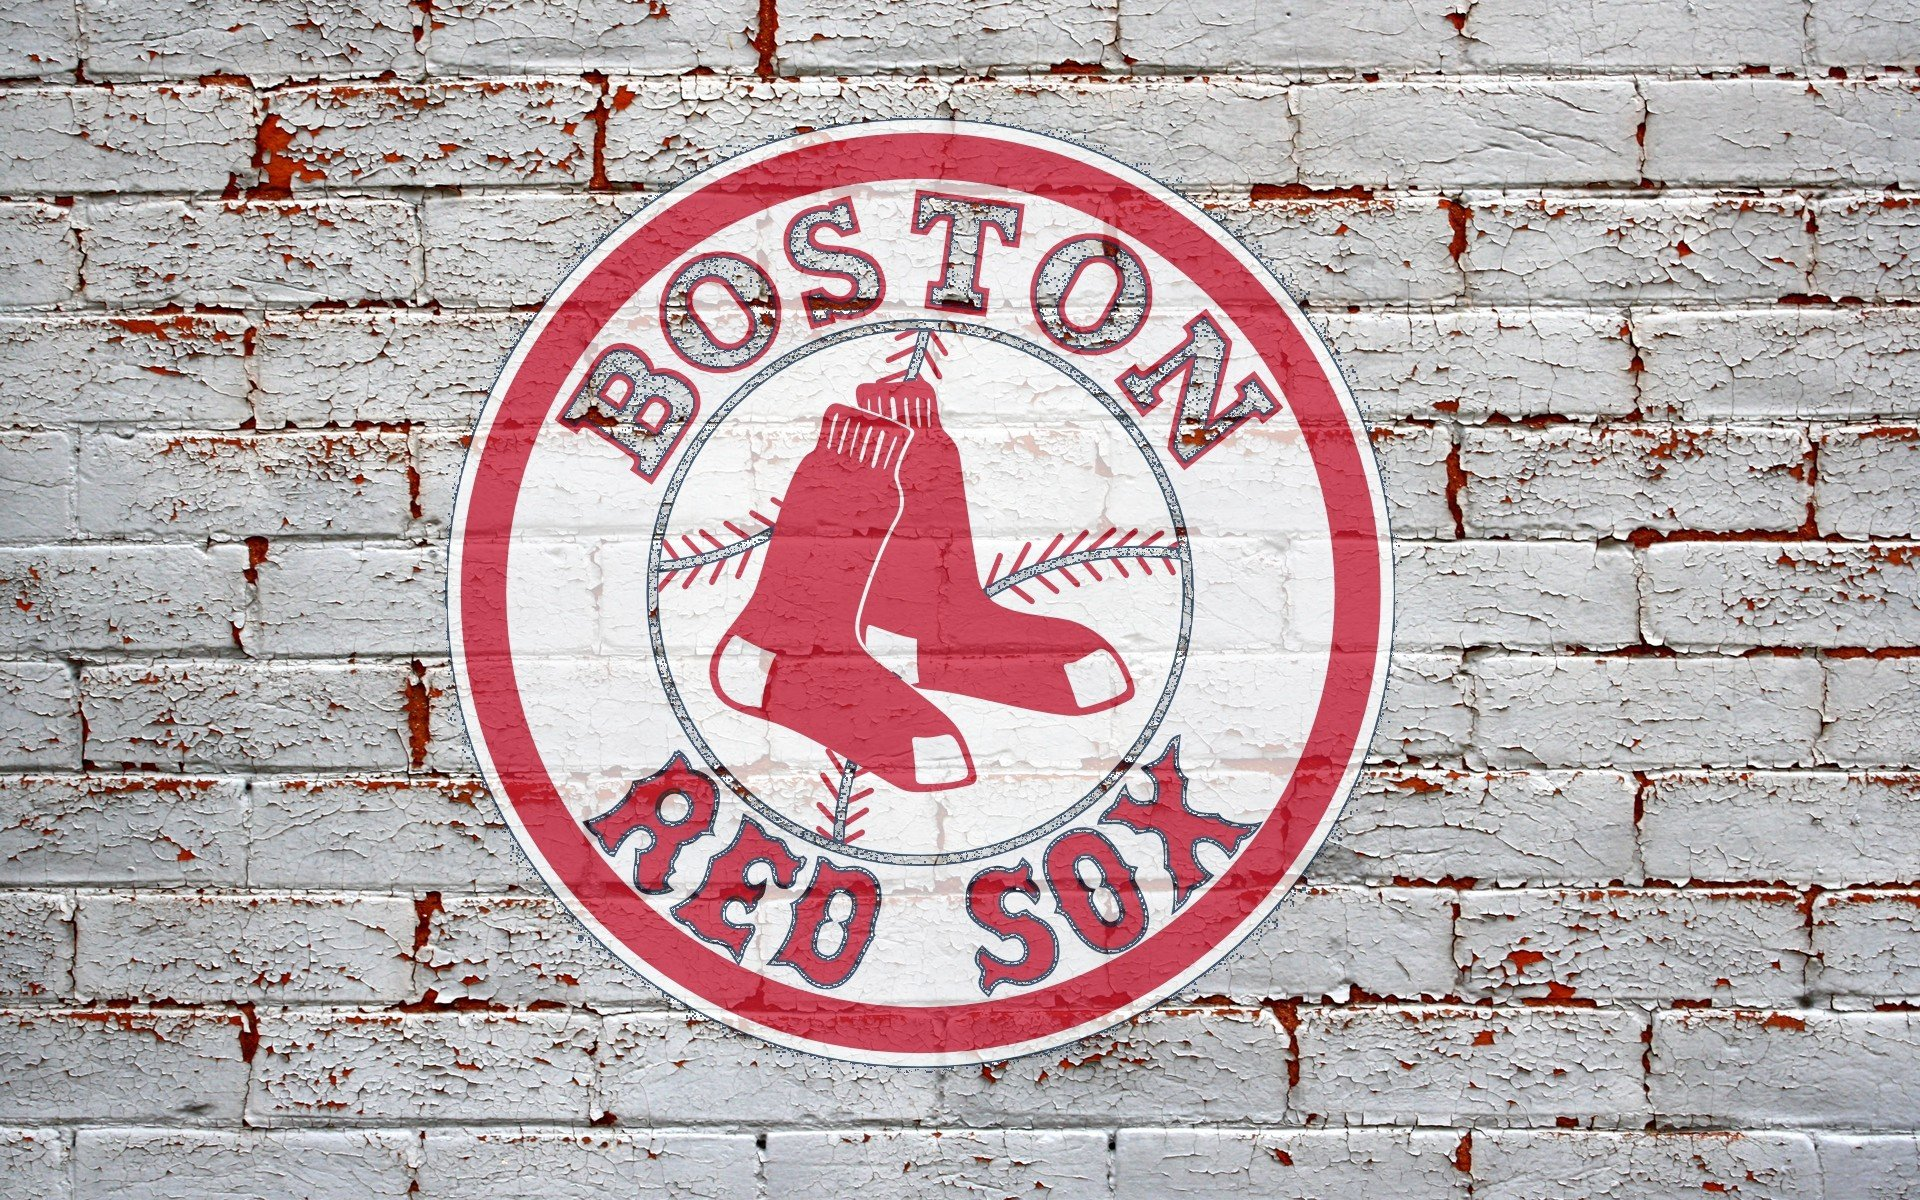 Boston Red Sox Wallpapers and Background Images   stmednet 1920x1200